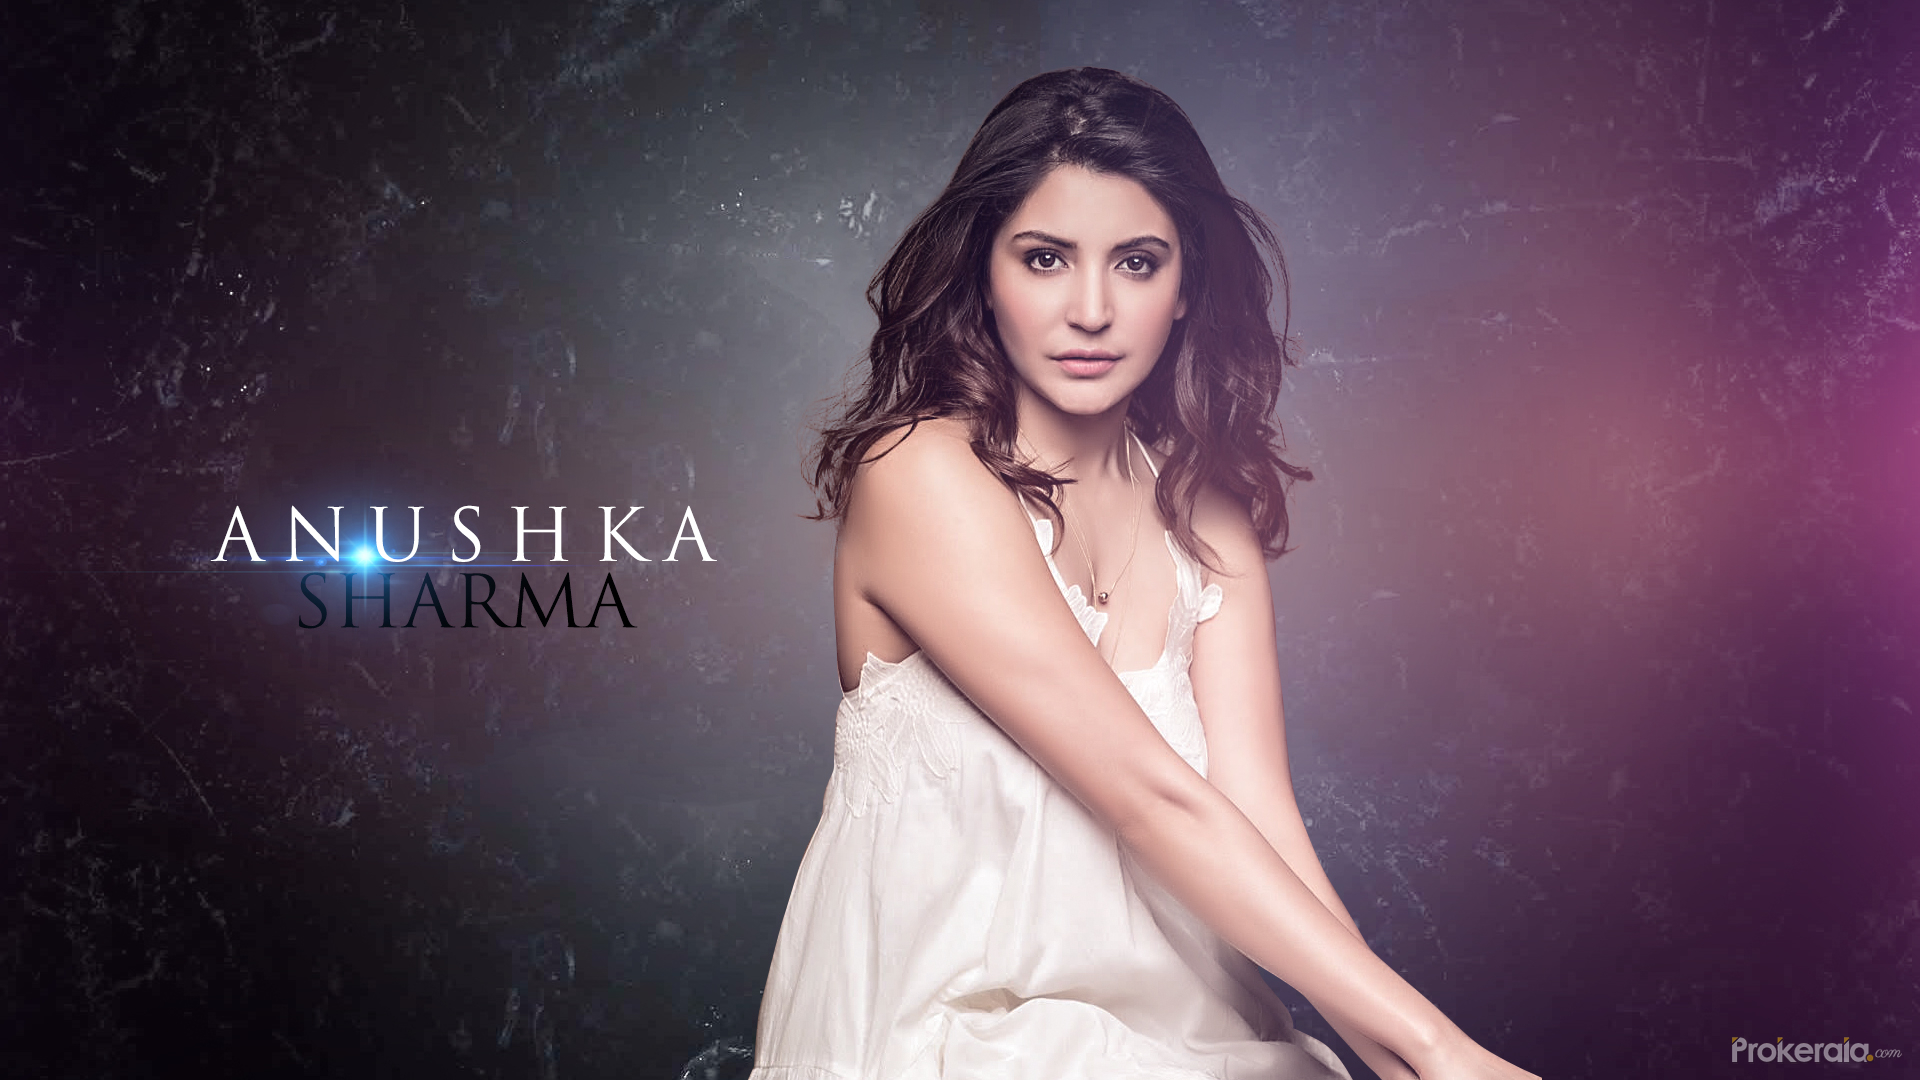 download anushka sharma wallpaper # 3 | hd anushka sharma wallpaper # 3